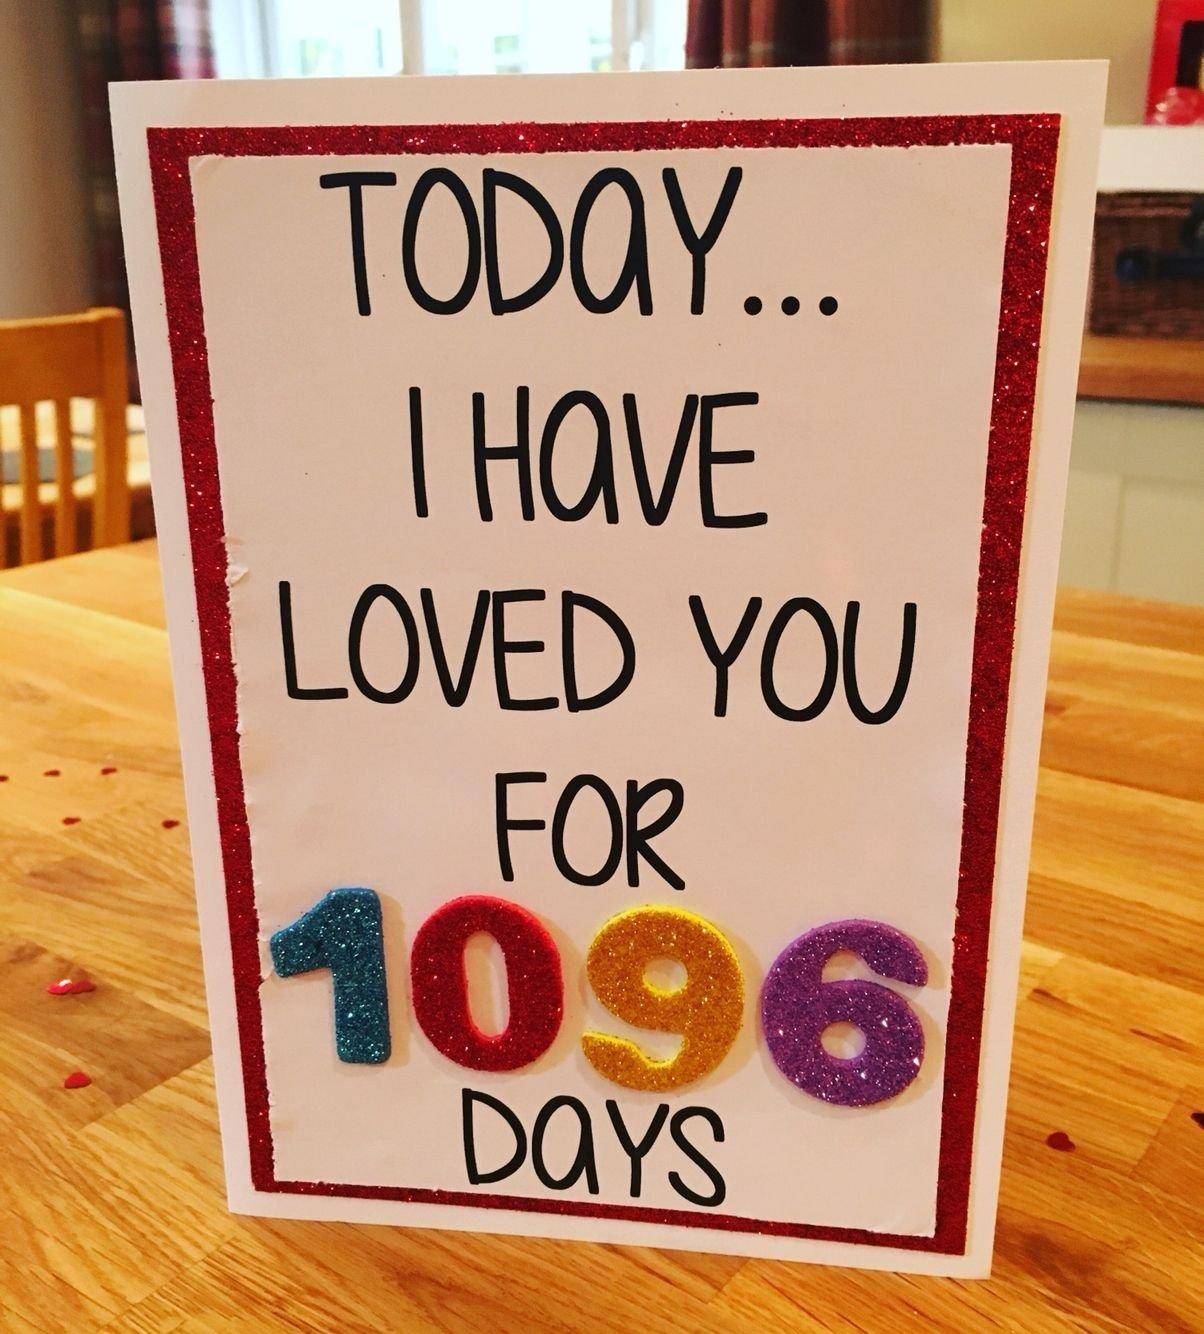 10 Nice 3Rd Year Anniversary Gift Ideas For Him 3 year anniversary card today i have loved you for 1096 days x 6 2020